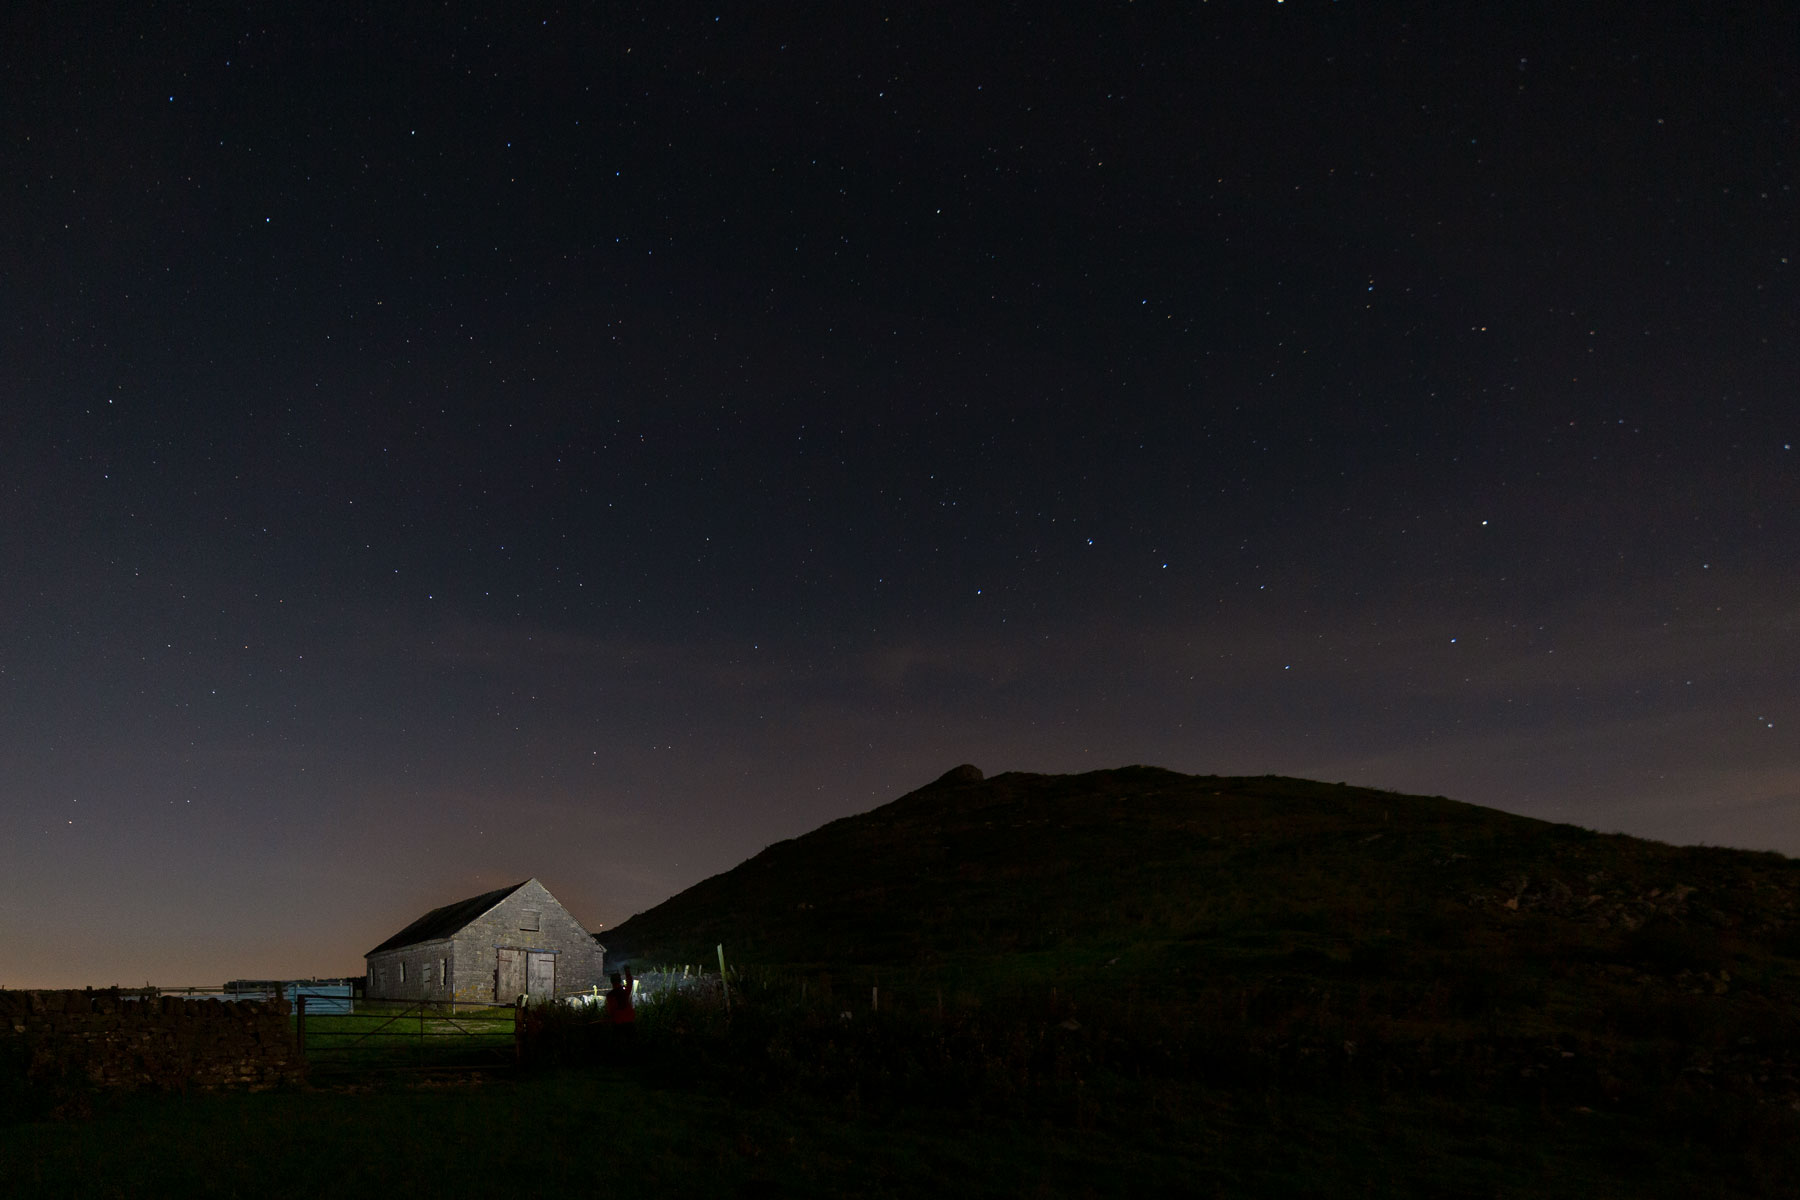 Barn in front  of thorpe cloud on stary nigh